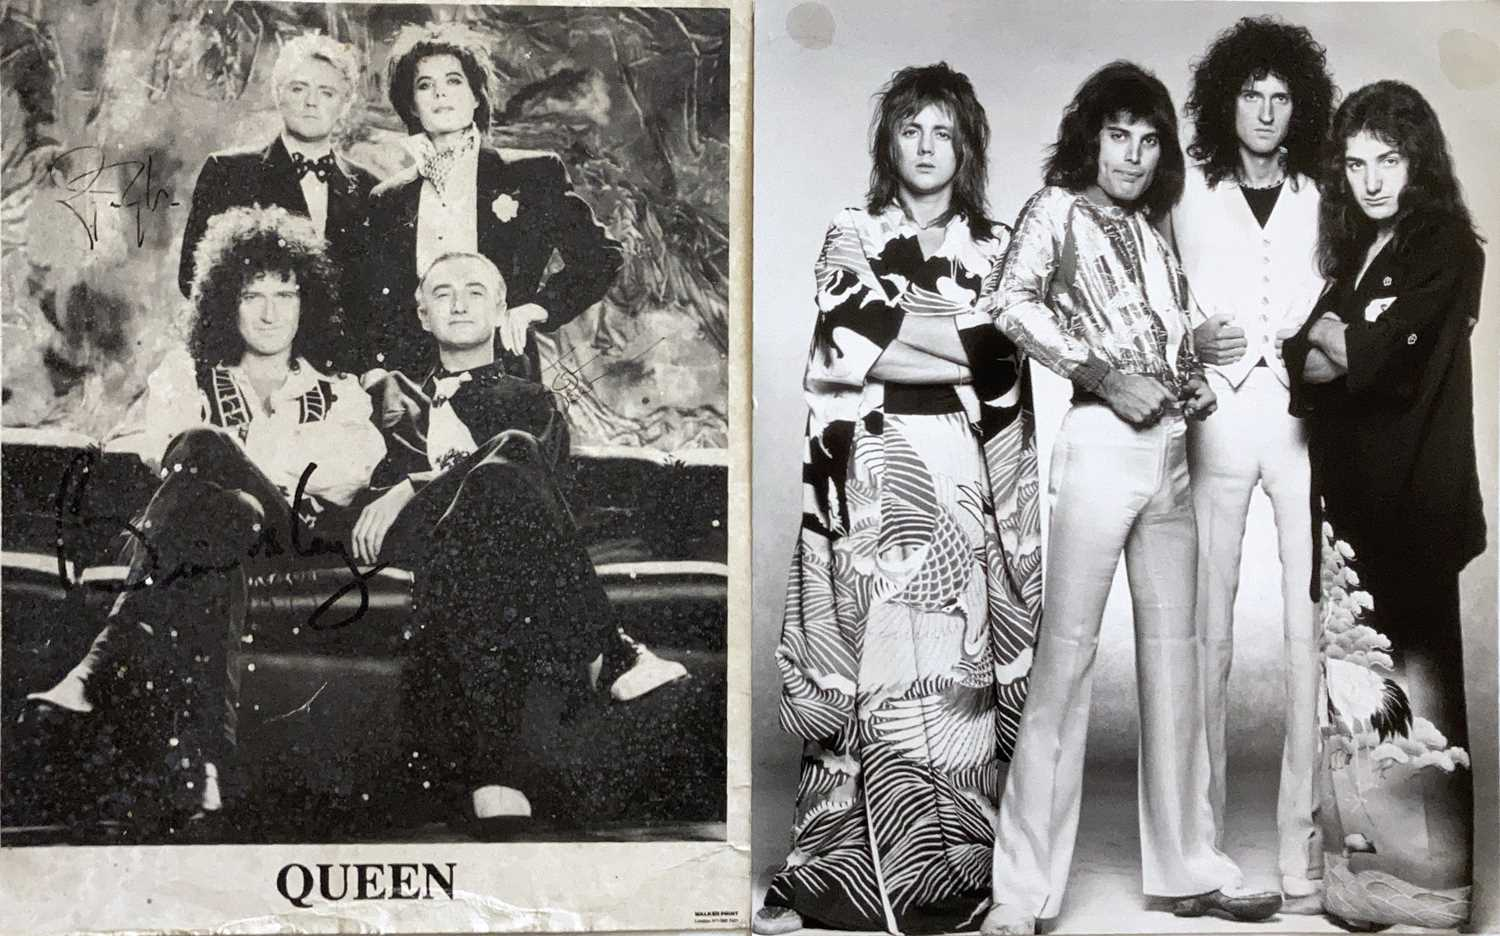 QUEEN SIGNED ITEMS. - Image 4 of 7